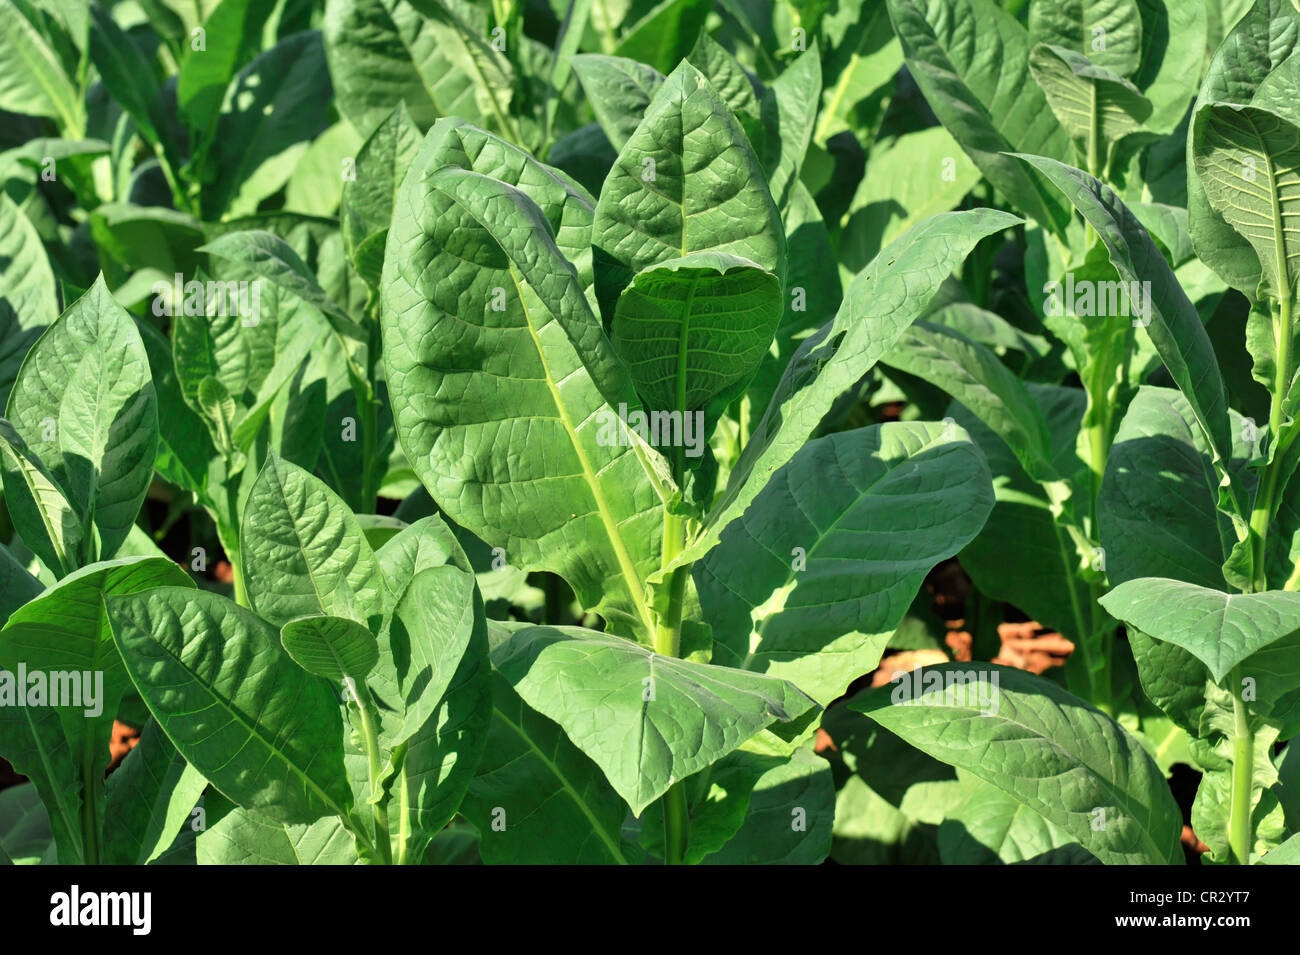 Tobacco plantation, tobacco leaves, Tobacco (Nicotiana), tobacco cultivation in the Valle de Vinales National Park, - Stock Image